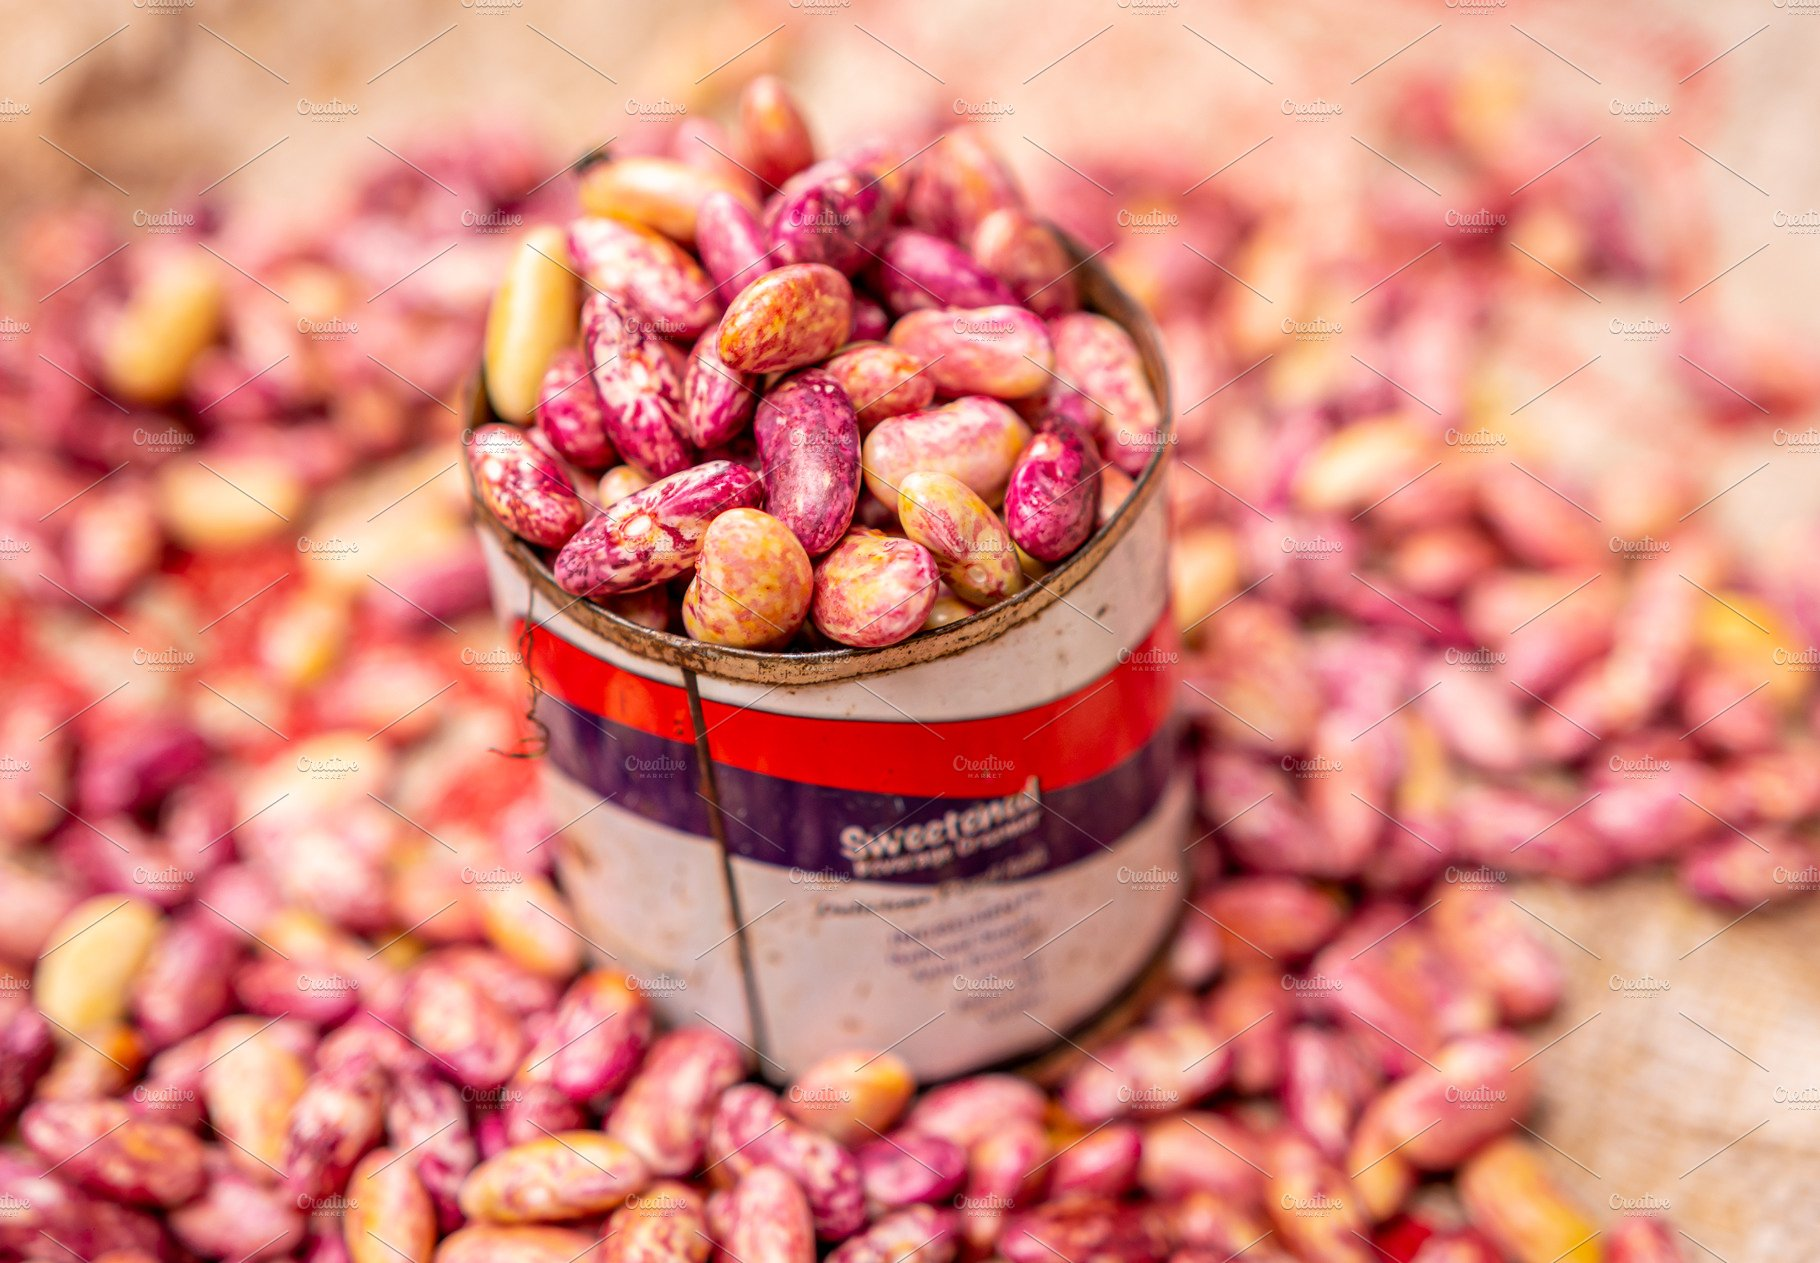 Red Kidney Beans In Tin Can Local High Quality Food Images Creative Market